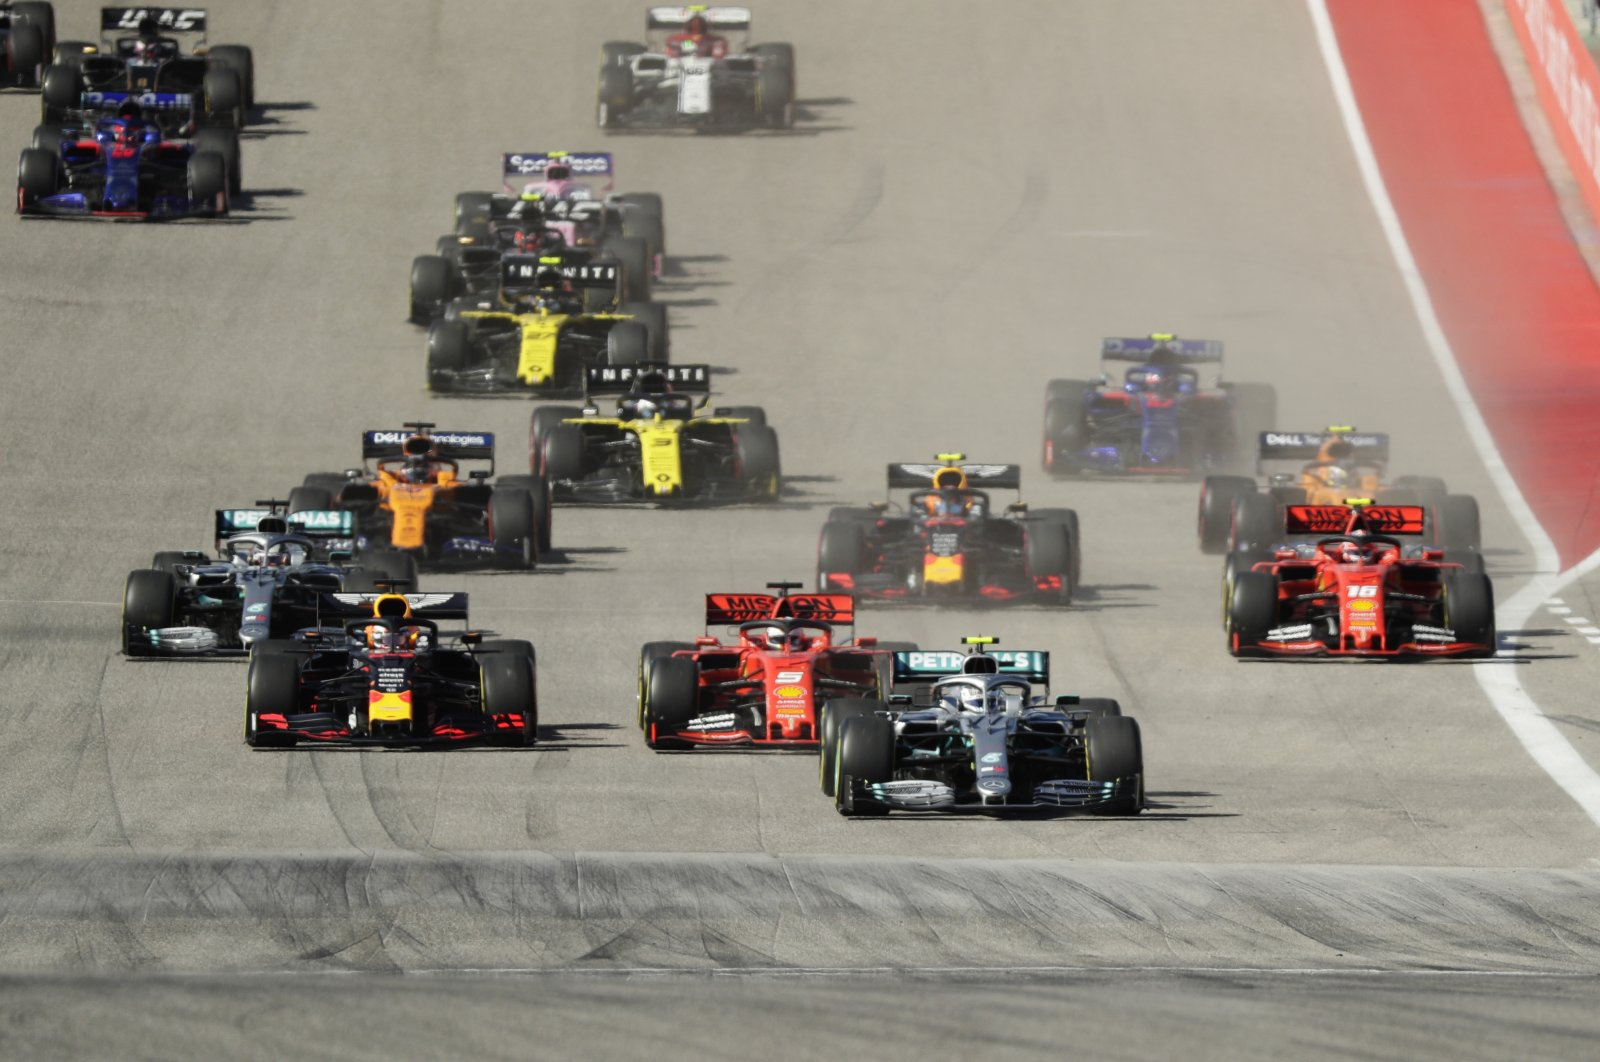 Mercedes driver Valtteri Bottas leads the field at the start of the Formula One U.S. Grand Prix in Austin, Texas, U.S., Nov. 3, 2019. (AP Photo)